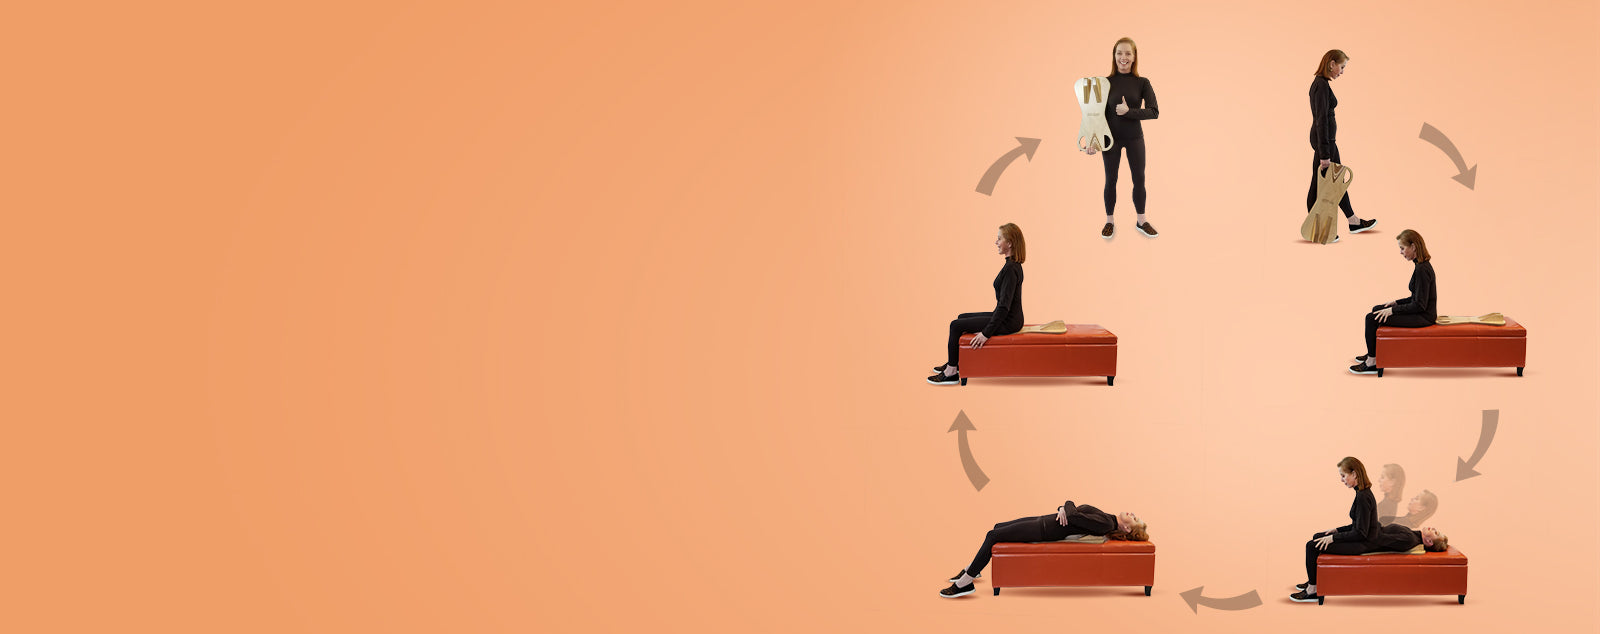 The 6 easy steps for relieving back pain while using the PurePosture